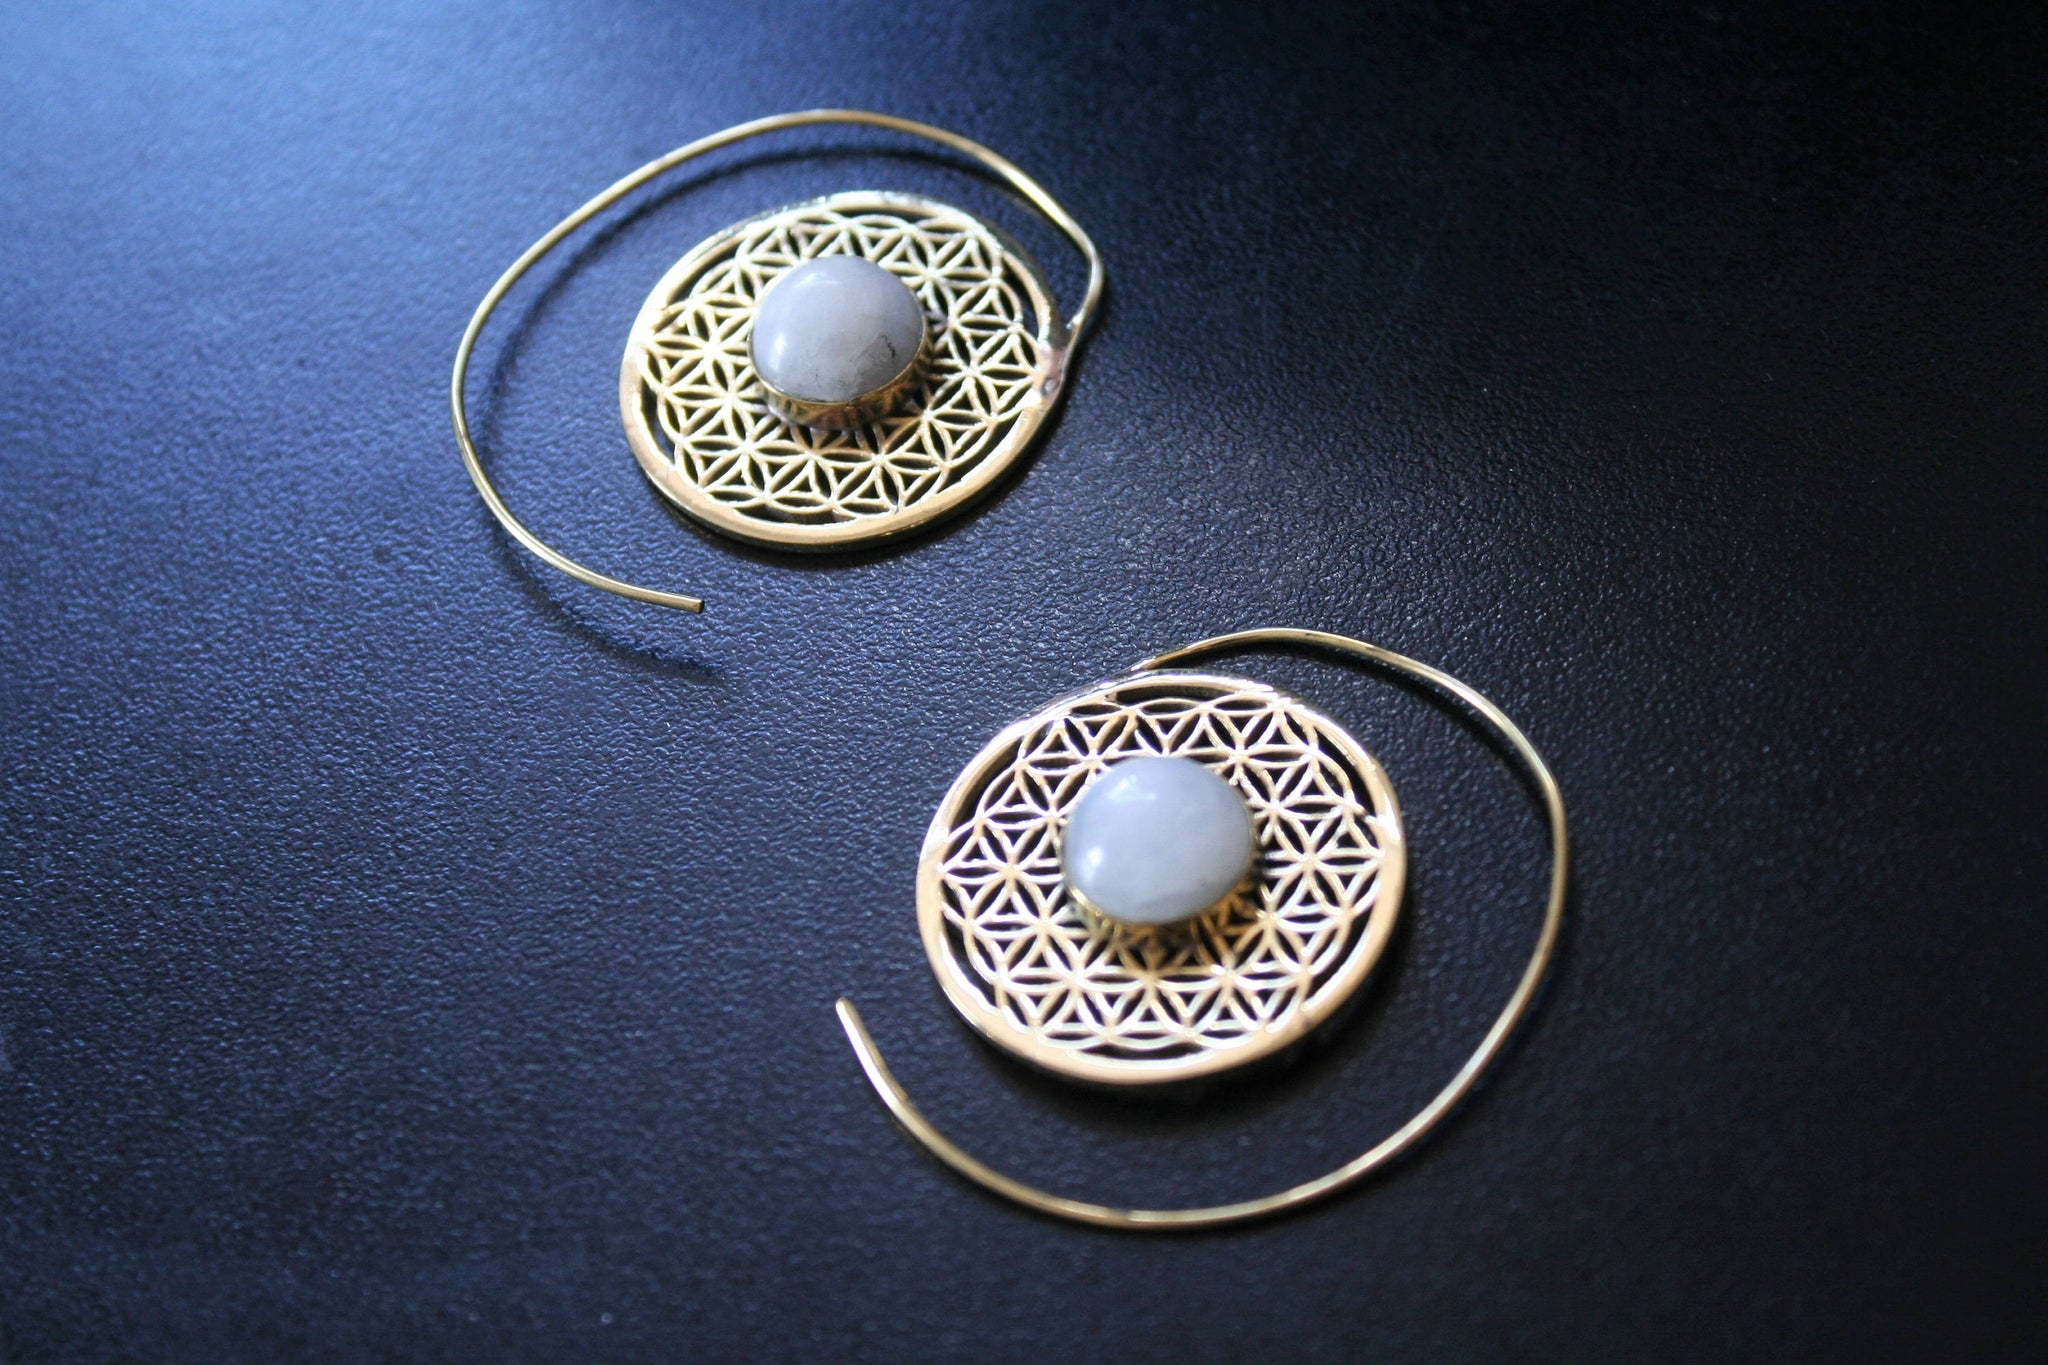 FLOWER OF LIFE Spiral Earrings - Moonstone Earrings, Turquoise Earrings, Tiger Eye Earrings, Sacred Geometry Earrings, Brass Earrings, Gift